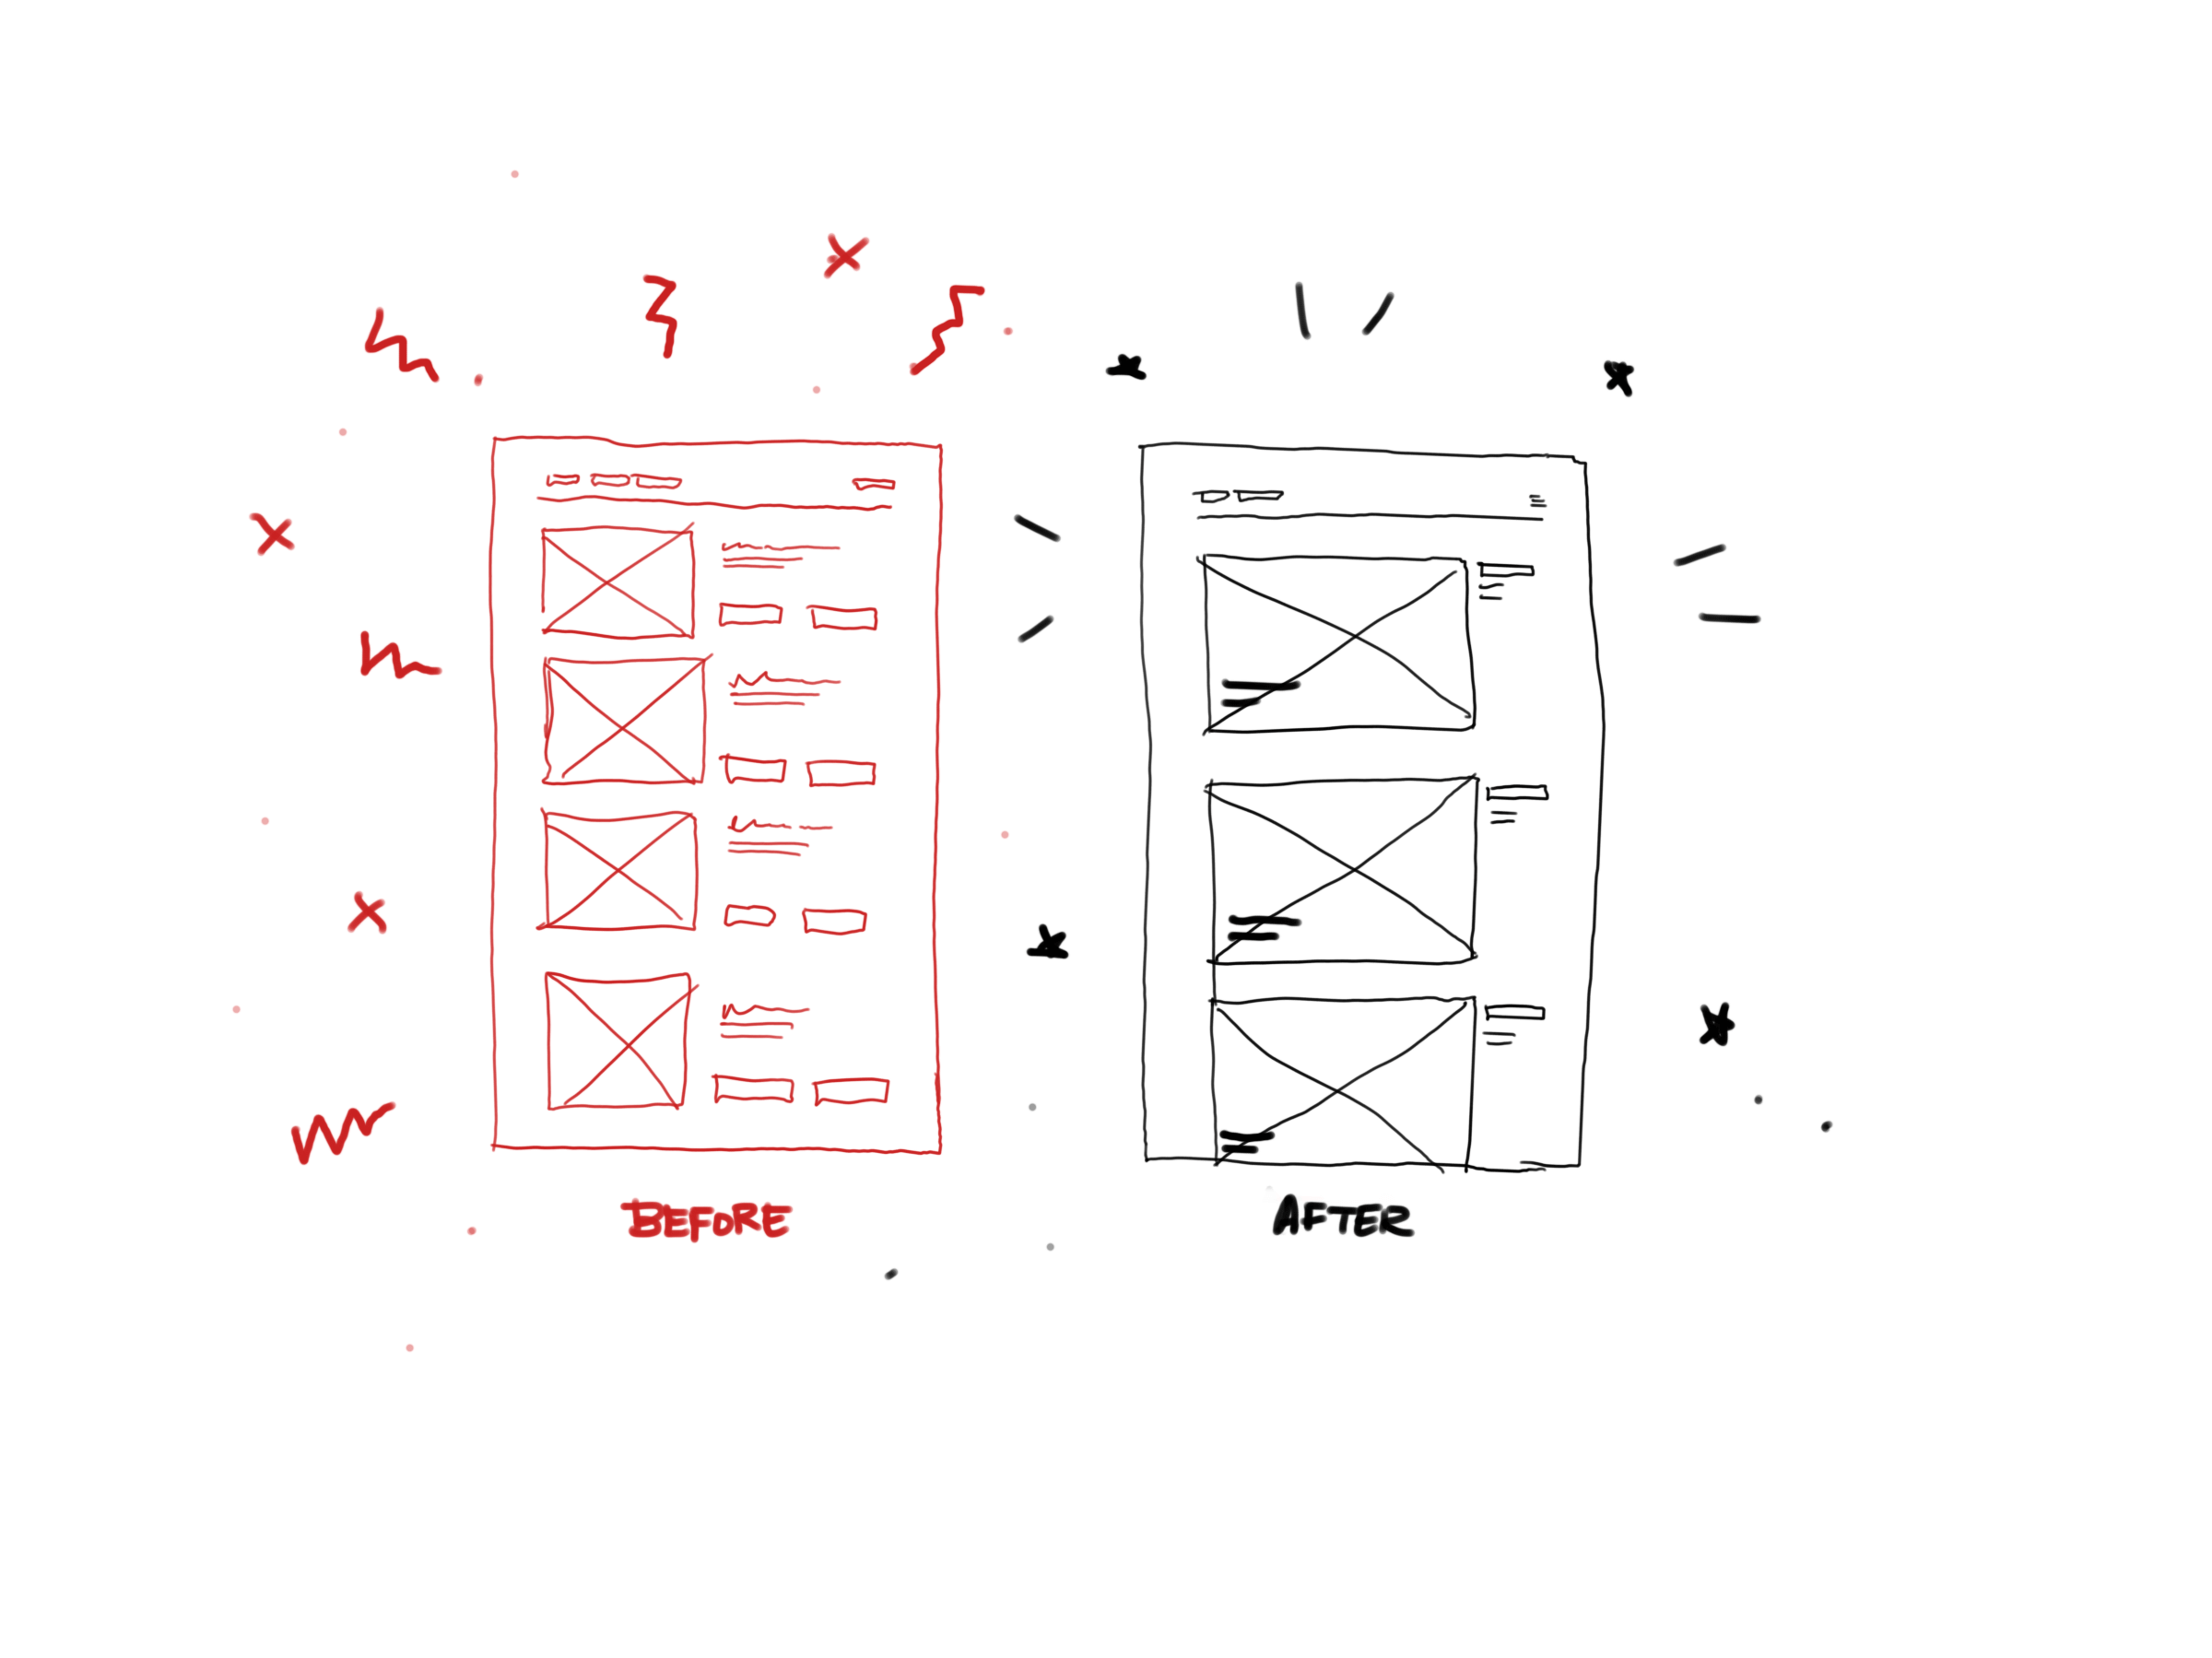 I design systems that enable people to get things done effectively.